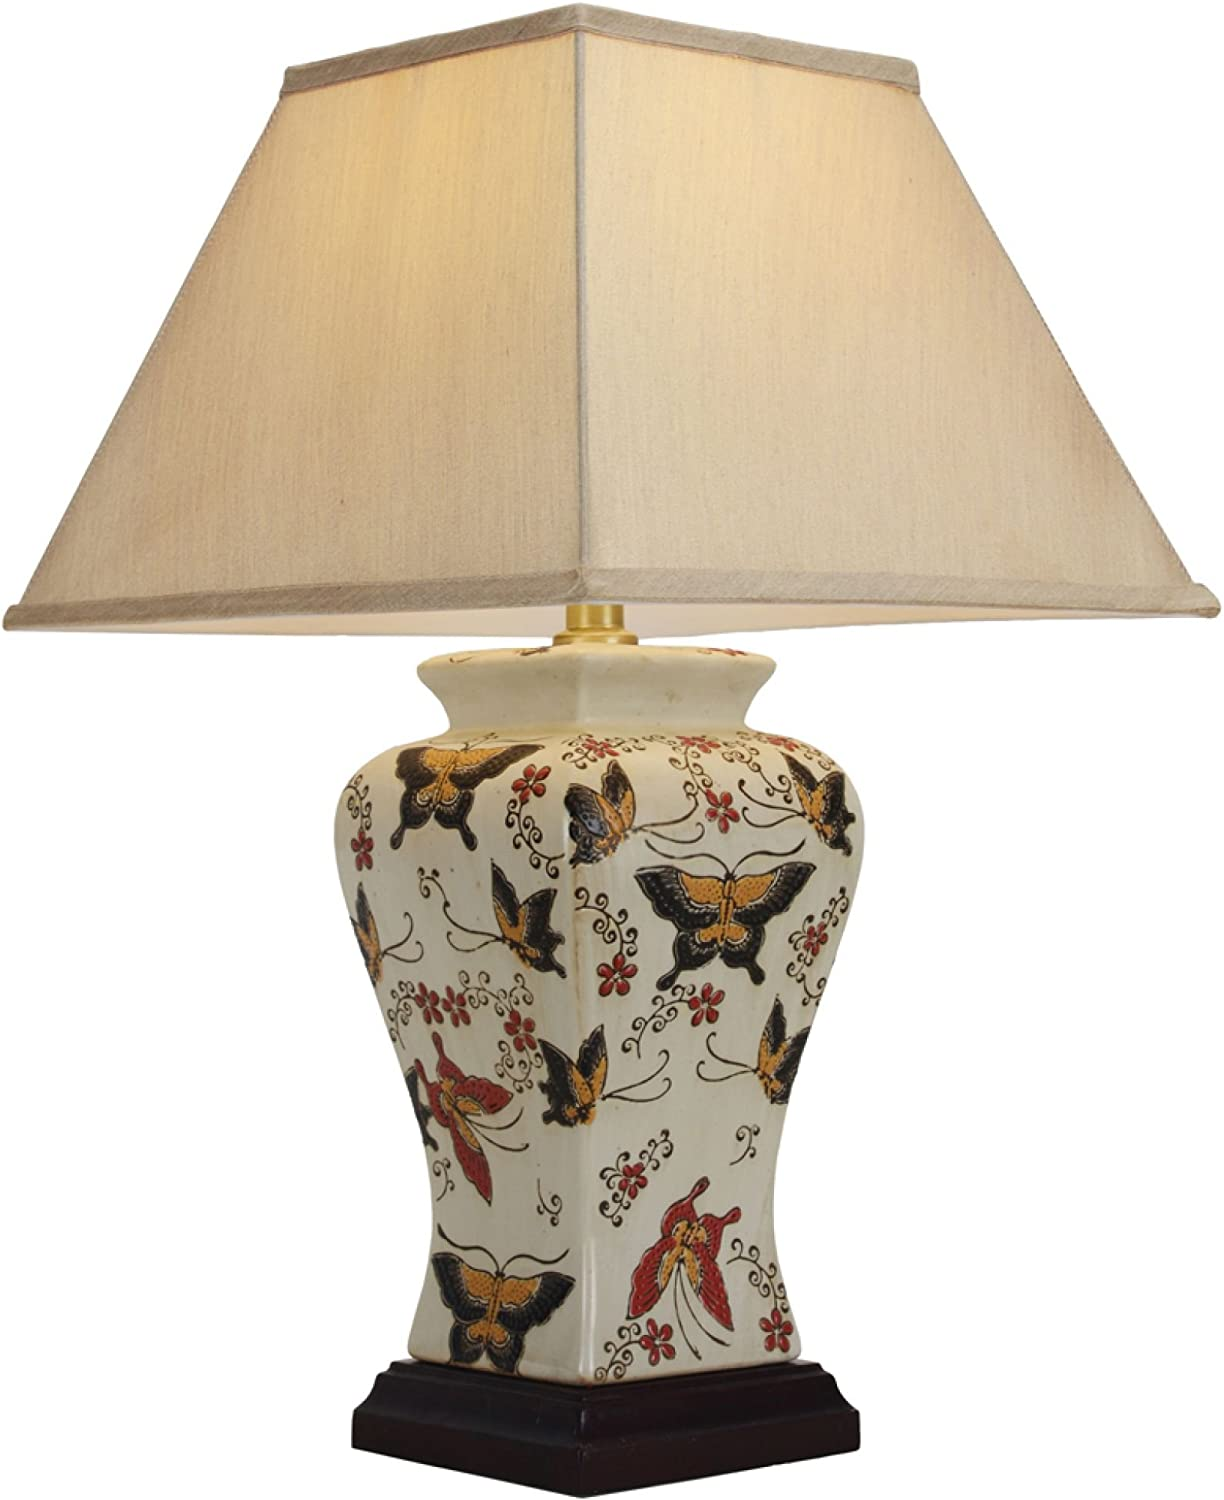 amazon chinese table lamps